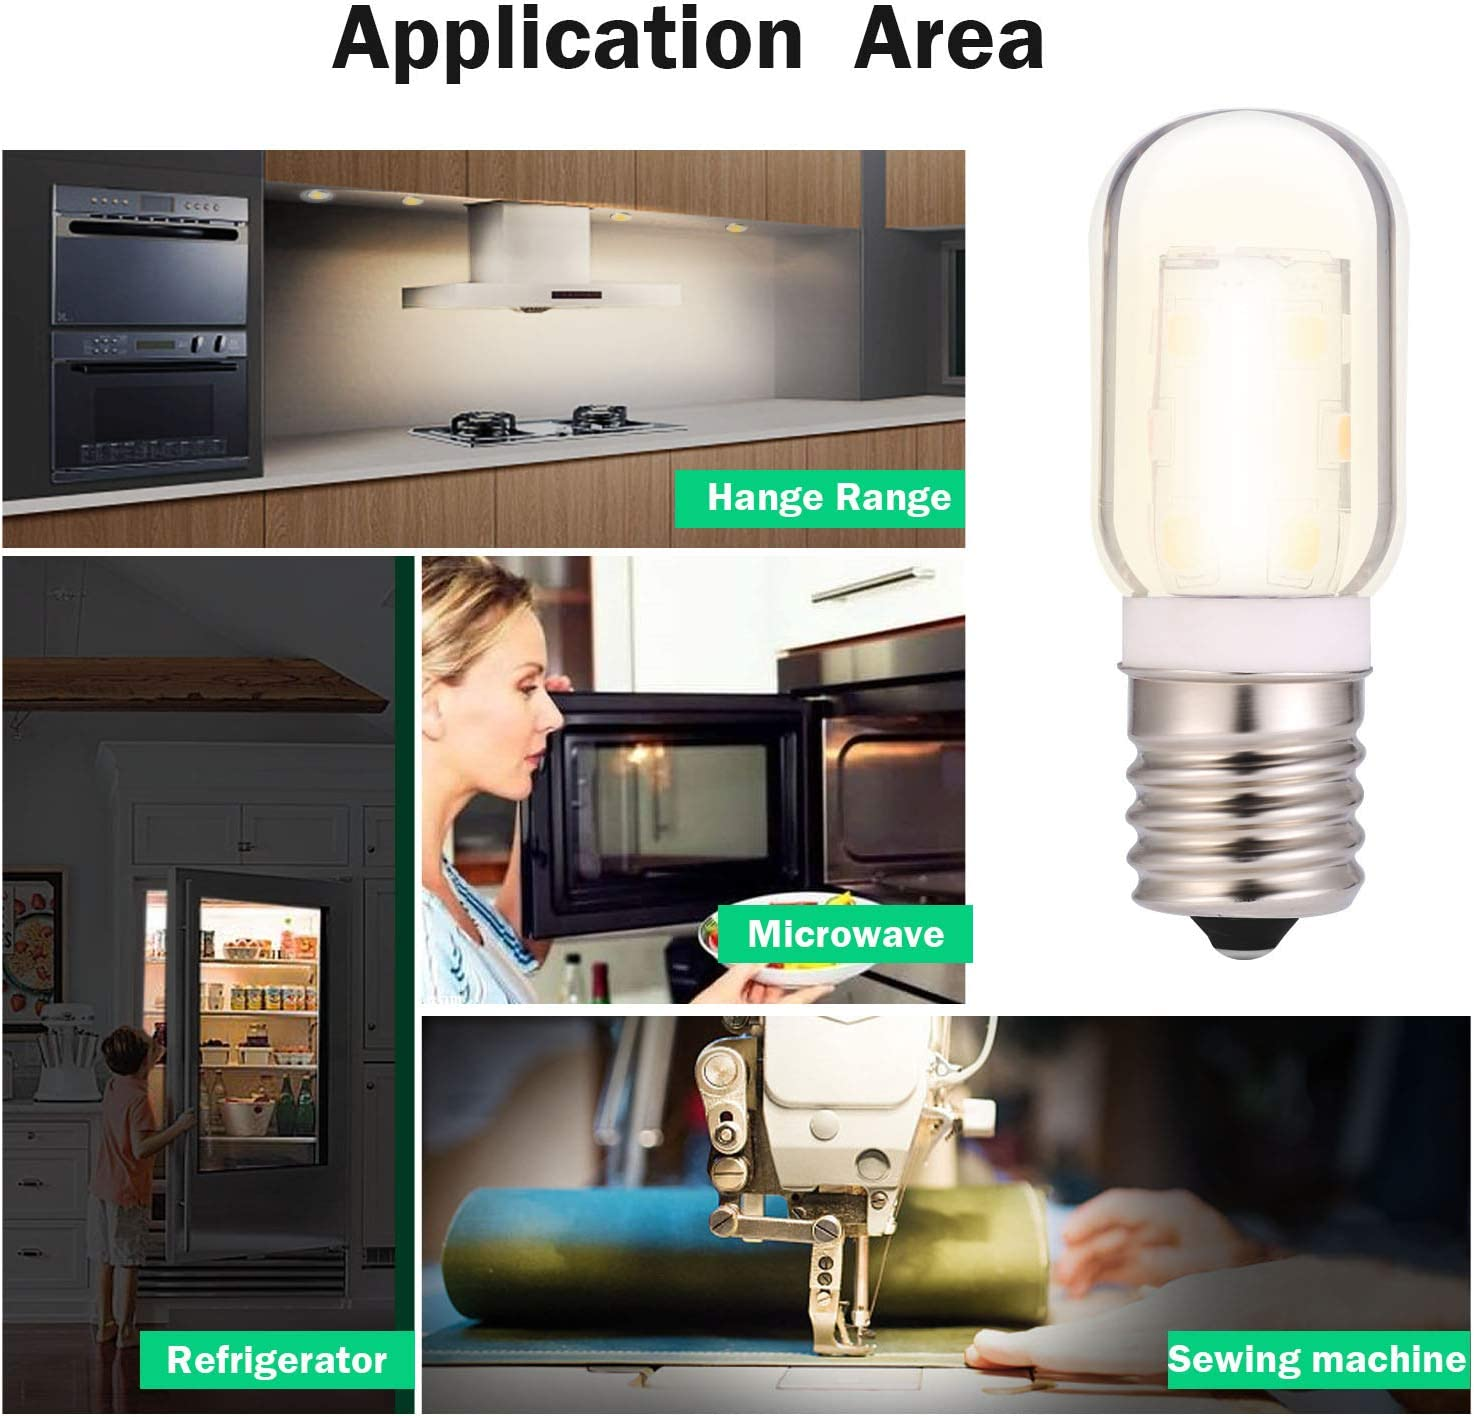 LED Microwave Appliance Light Bulb for Refrigerator Range Hood Over Stove Equivalent 40W Incandescent Bulb E17 Intermediate Screw Base 120V 3W 360lm dimmable Daylight 5000K Pack of 4